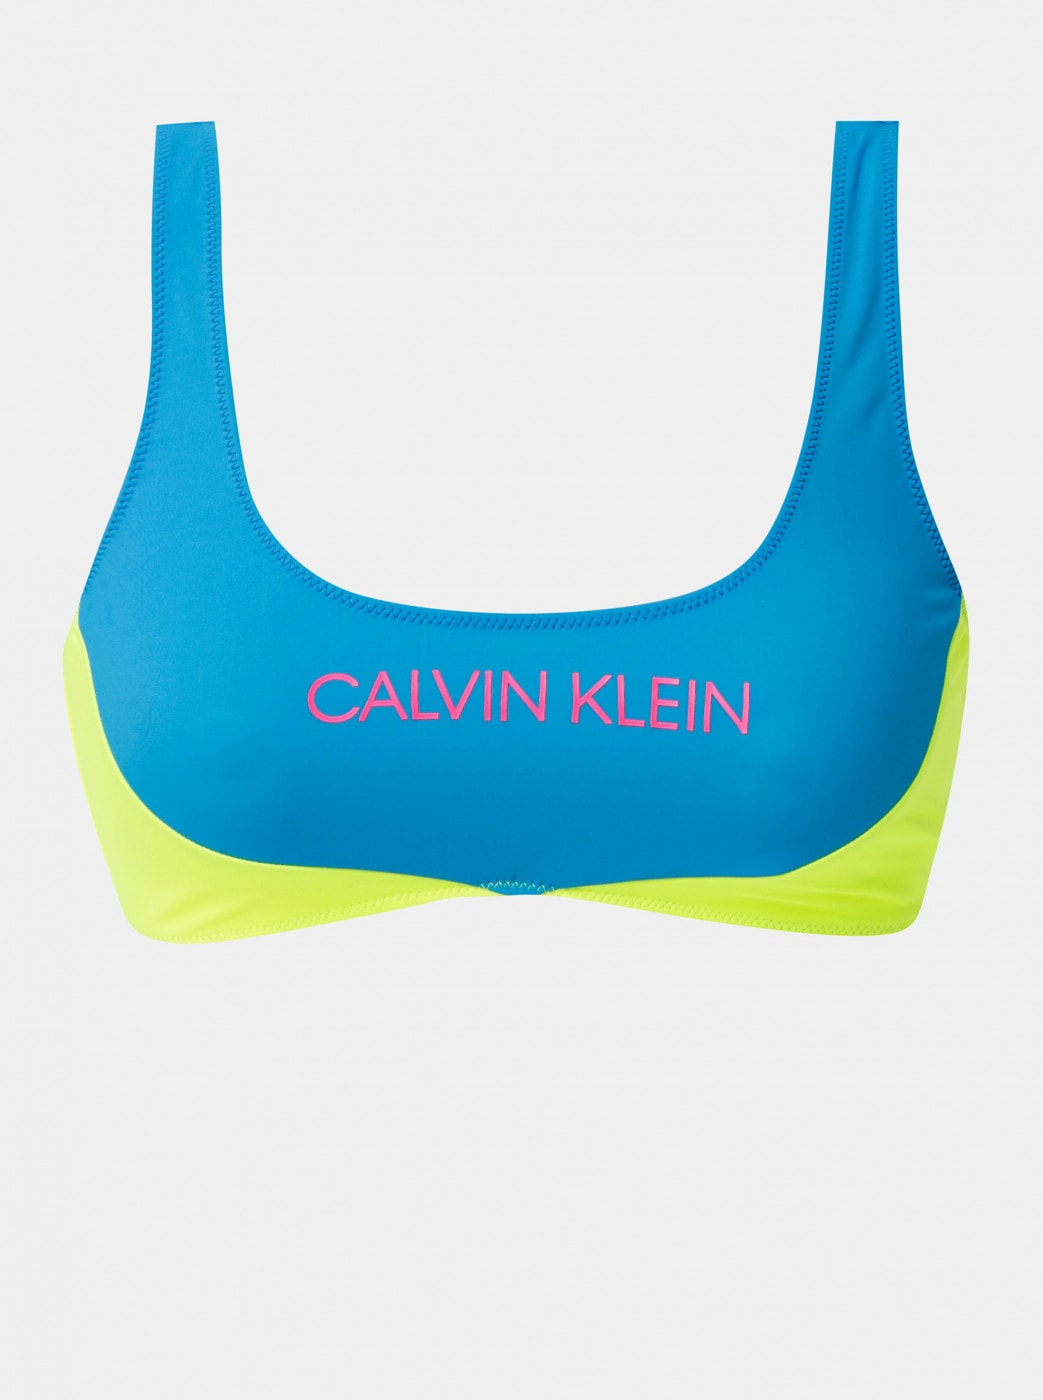 Calvin Klein Underwear Yellow-blue Top